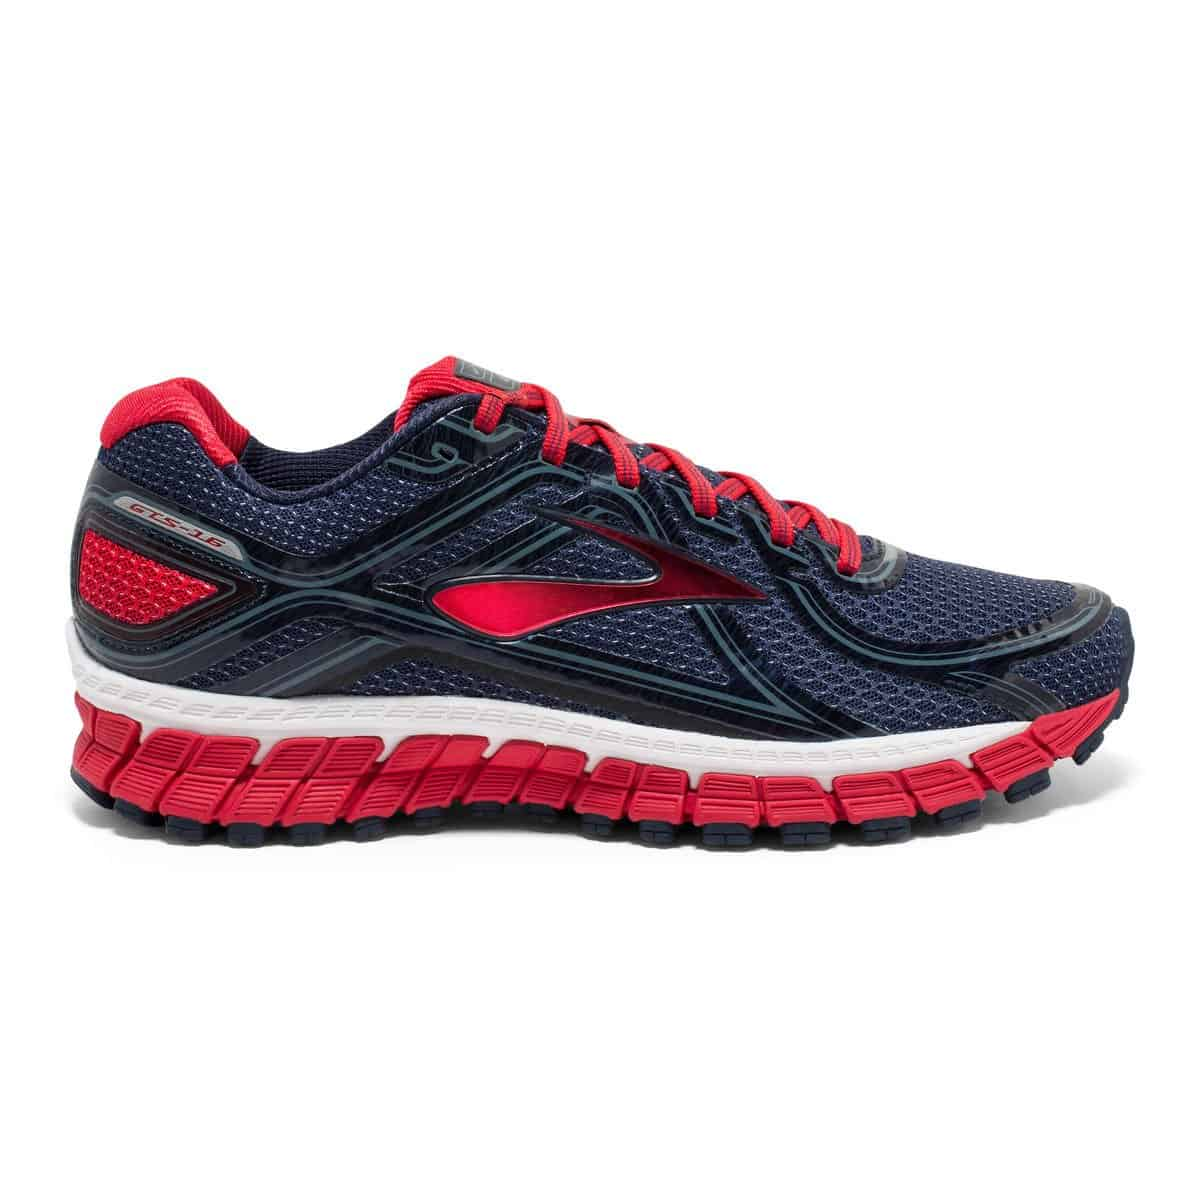 The Top 7 Shoes for Plantar Fasciitis includes the Brooks Adrenaline GTS 16